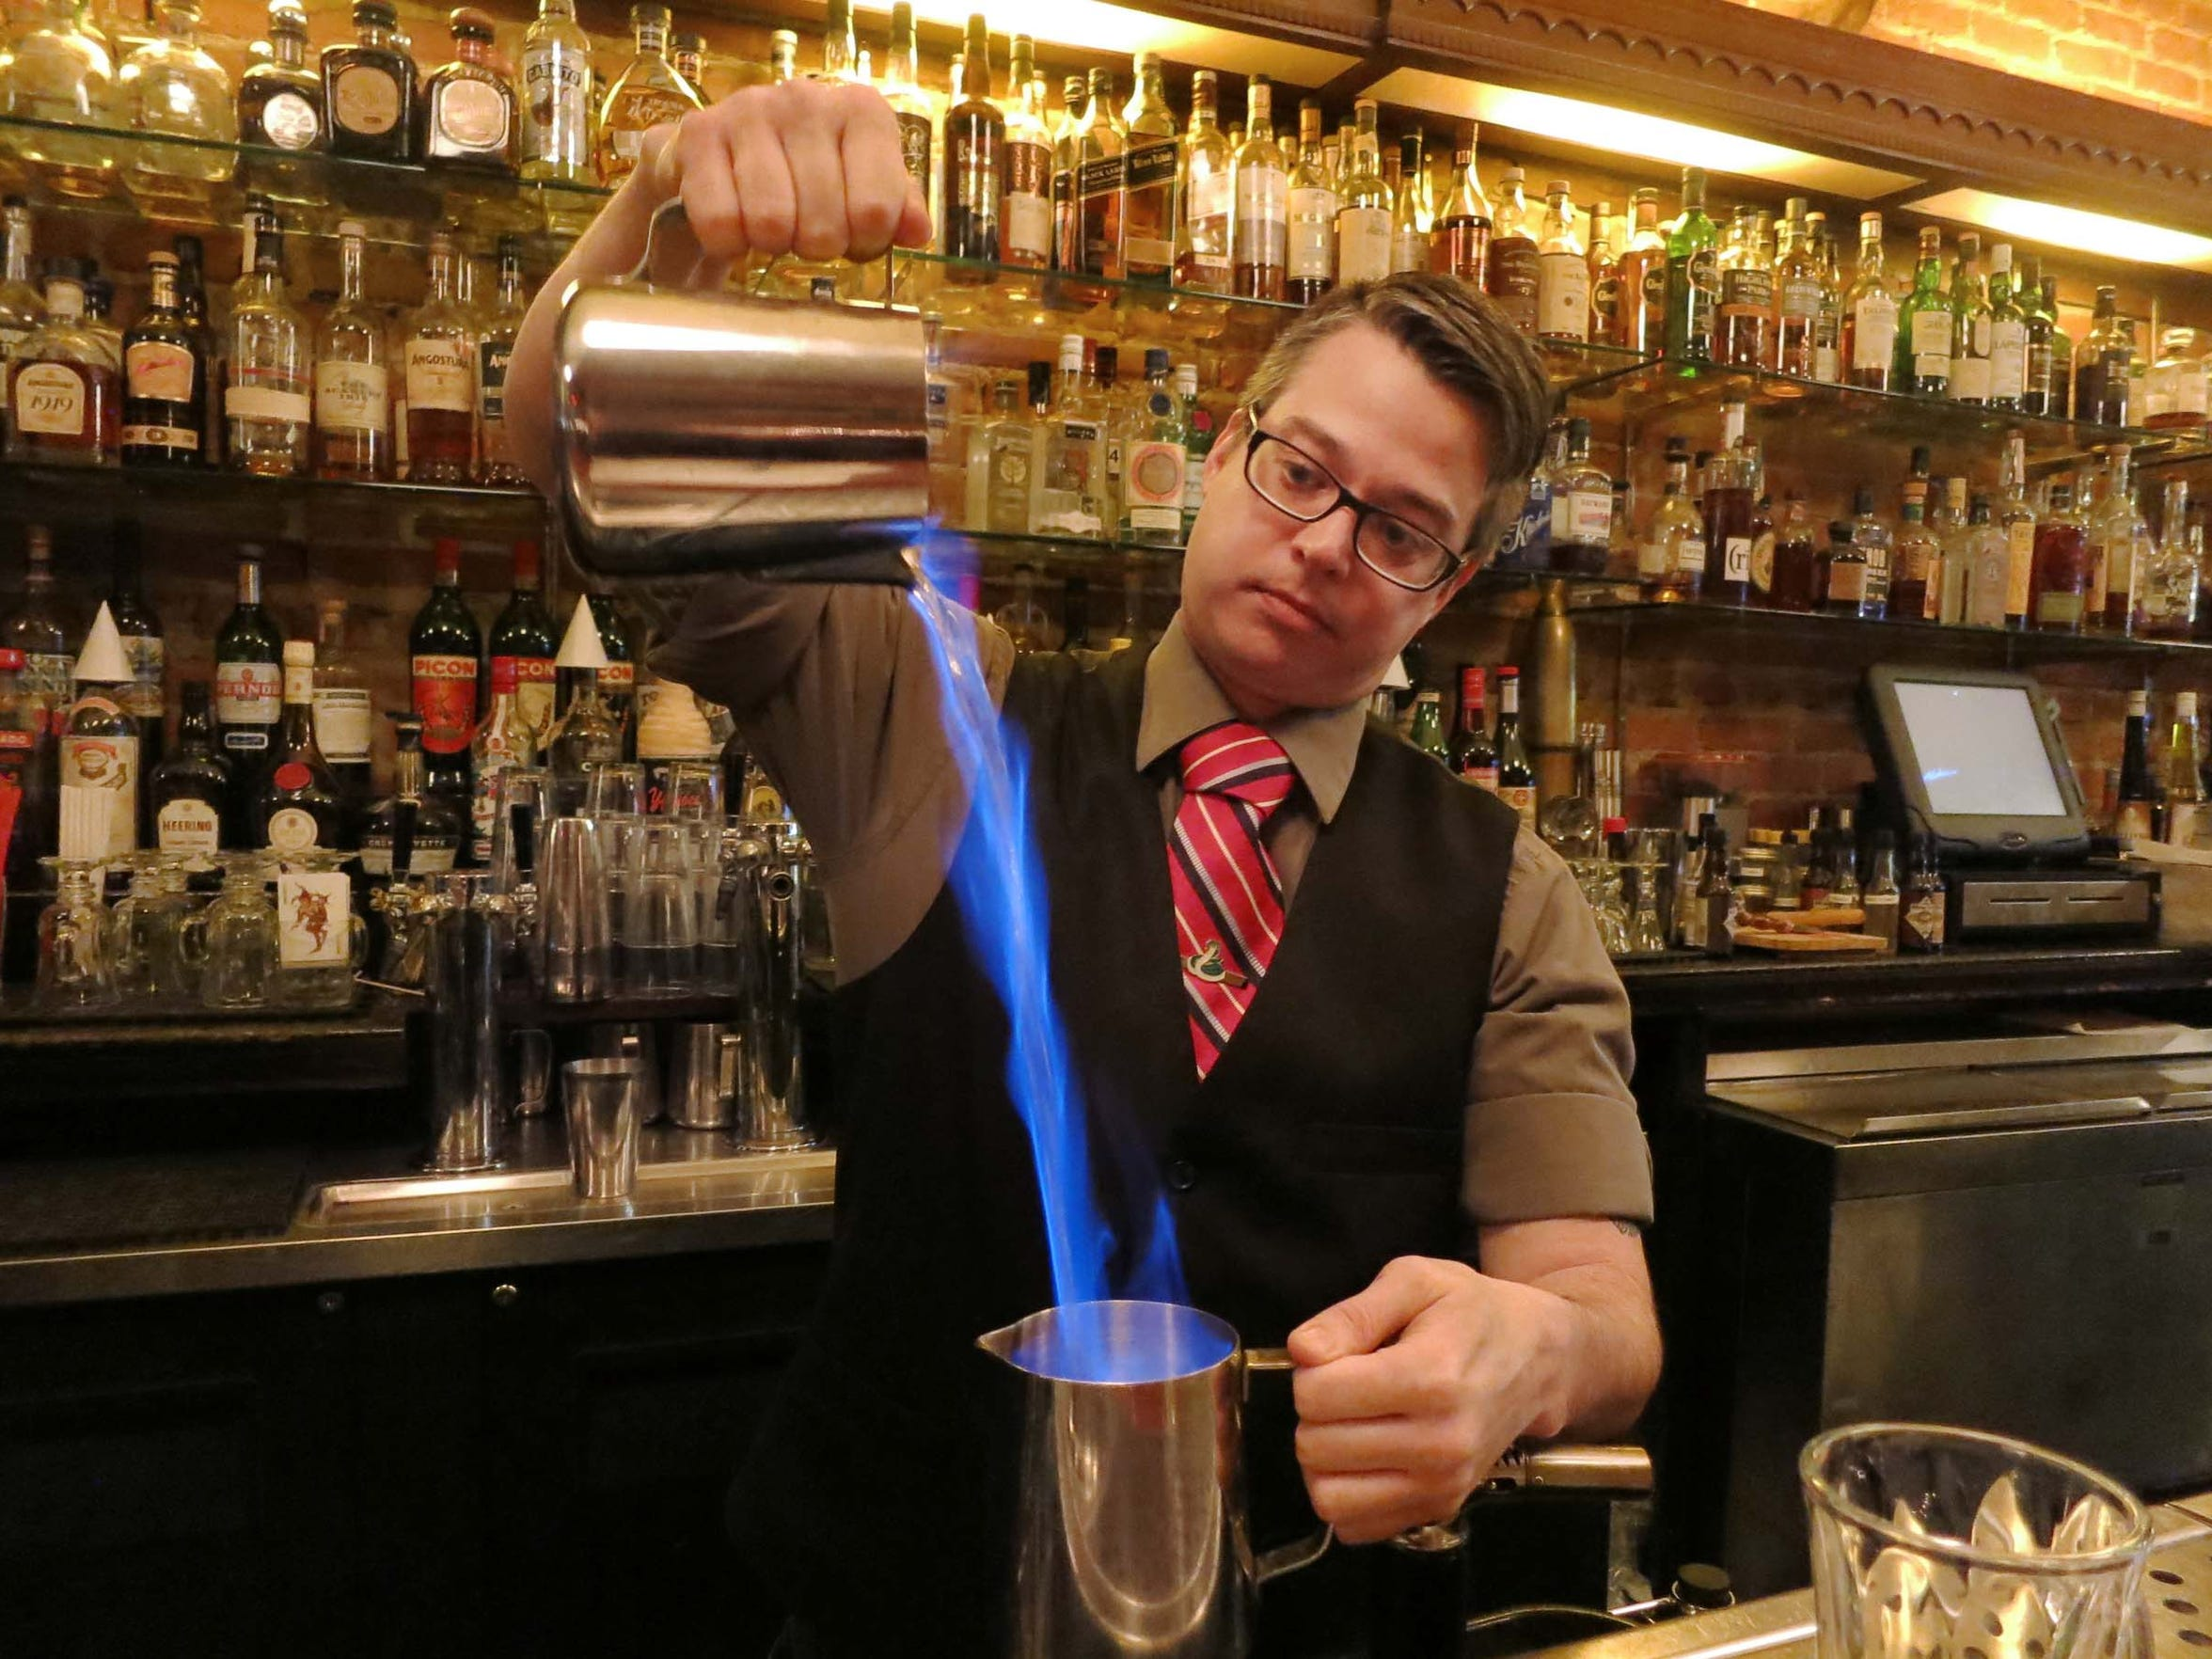 At the Sugar House in Detroit's Corktown, bartender Scott Poole prepares a Freddy Krueger cocktail from the bar's recent fall menu. The spirits are set on fire and poured from pitcher to pitcher before being served warm in a clear coffee mug.